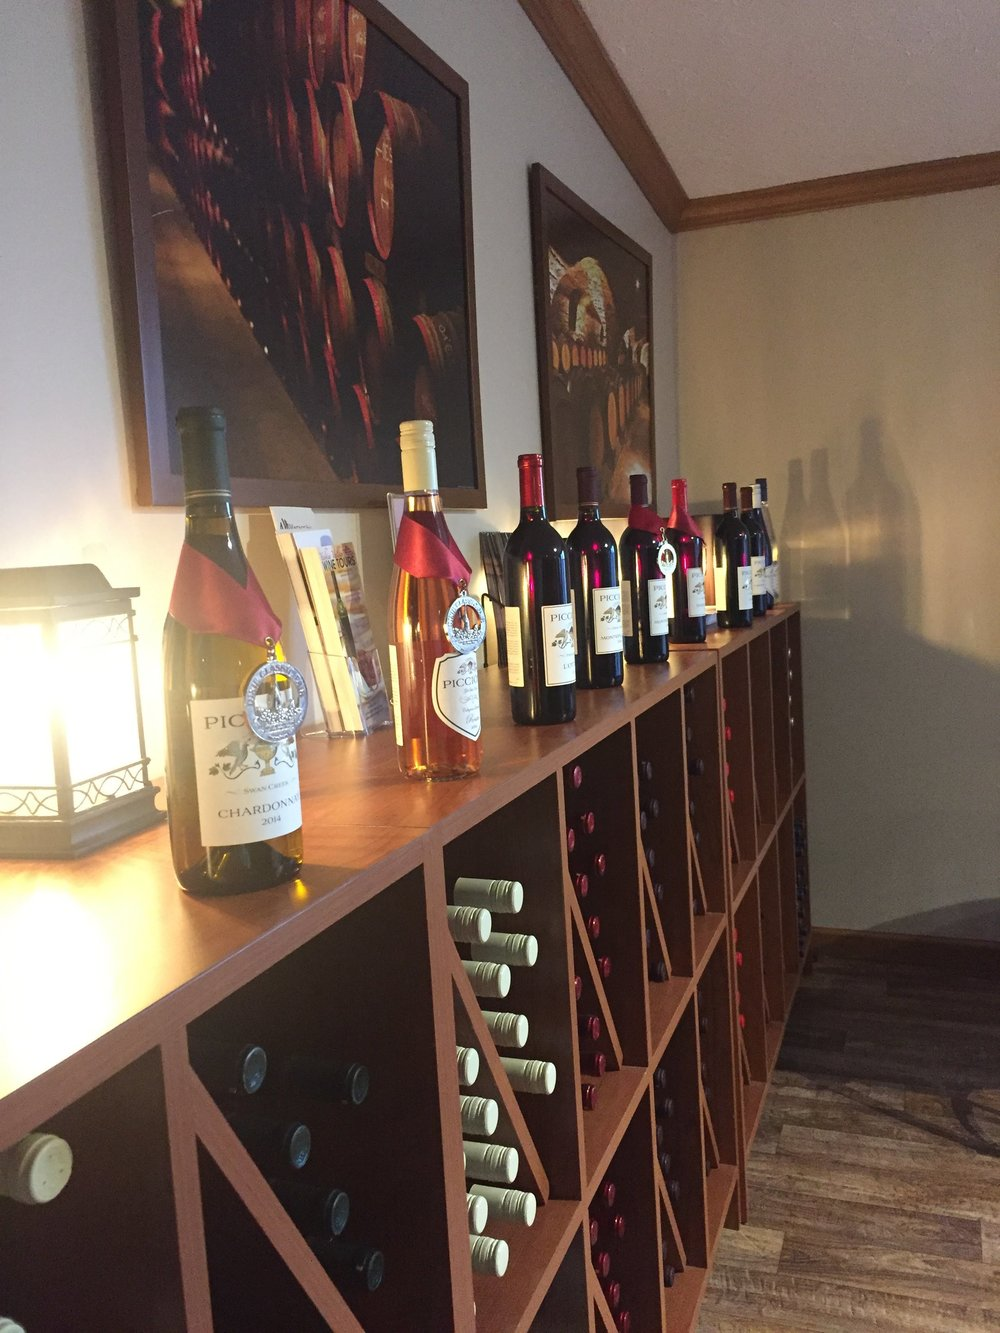 A view of some of their award-winning wines